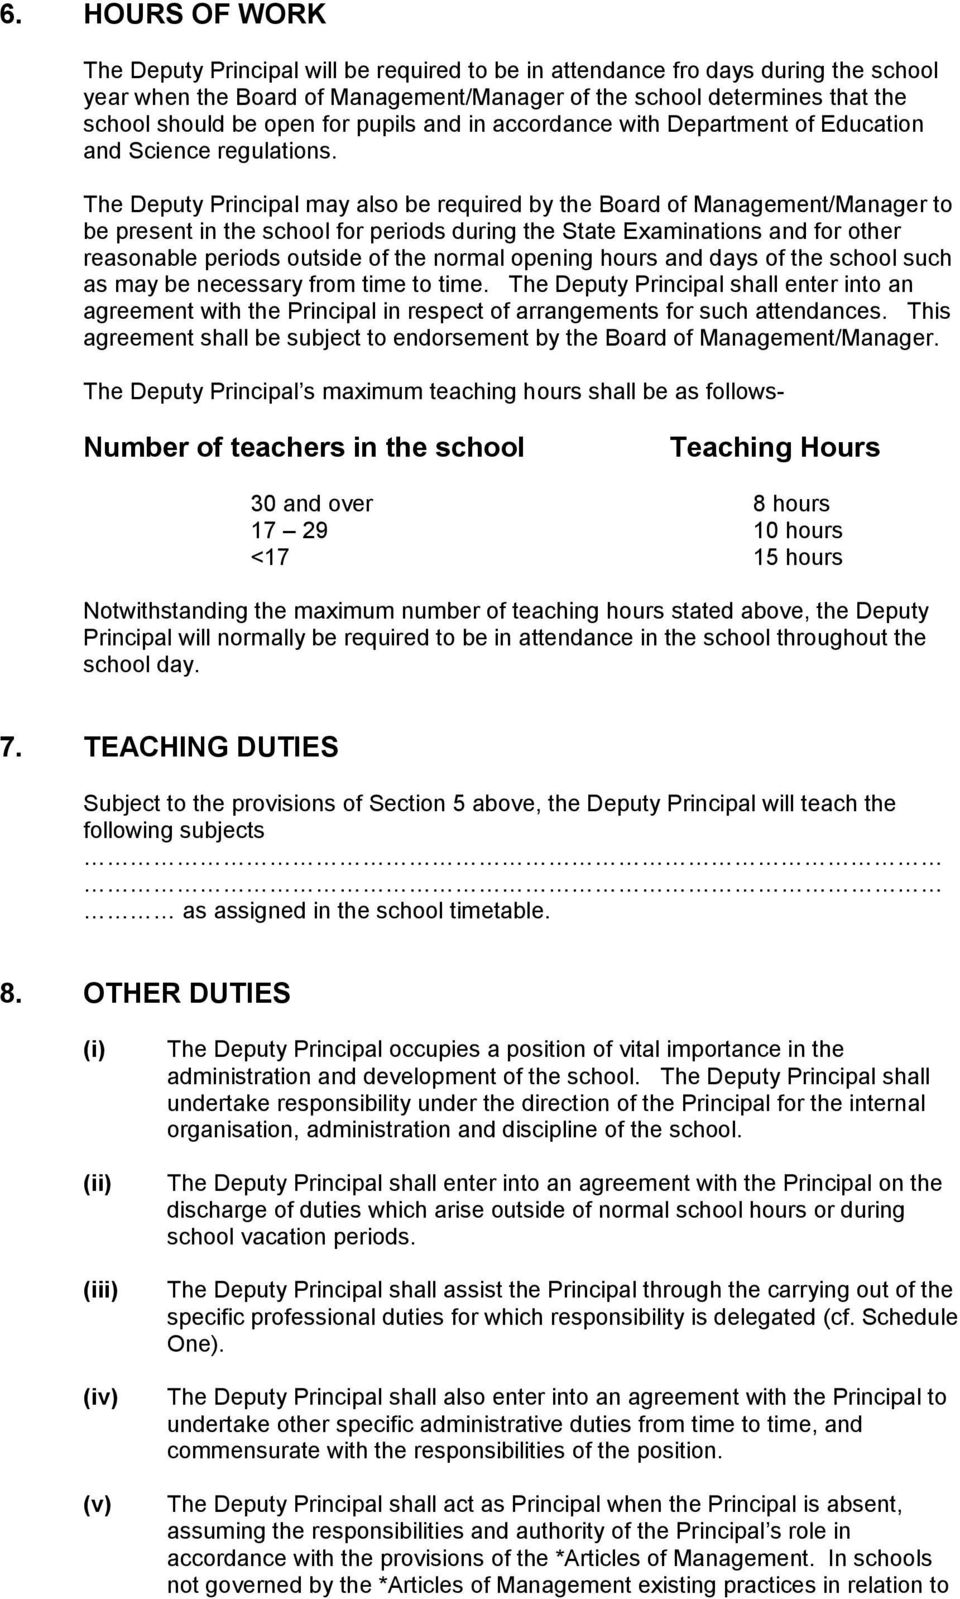 The Deputy Principal may also be required by the Board of Management/Manager to be present in the school for periods during the State Examinations and for other reasonable periods outside of the